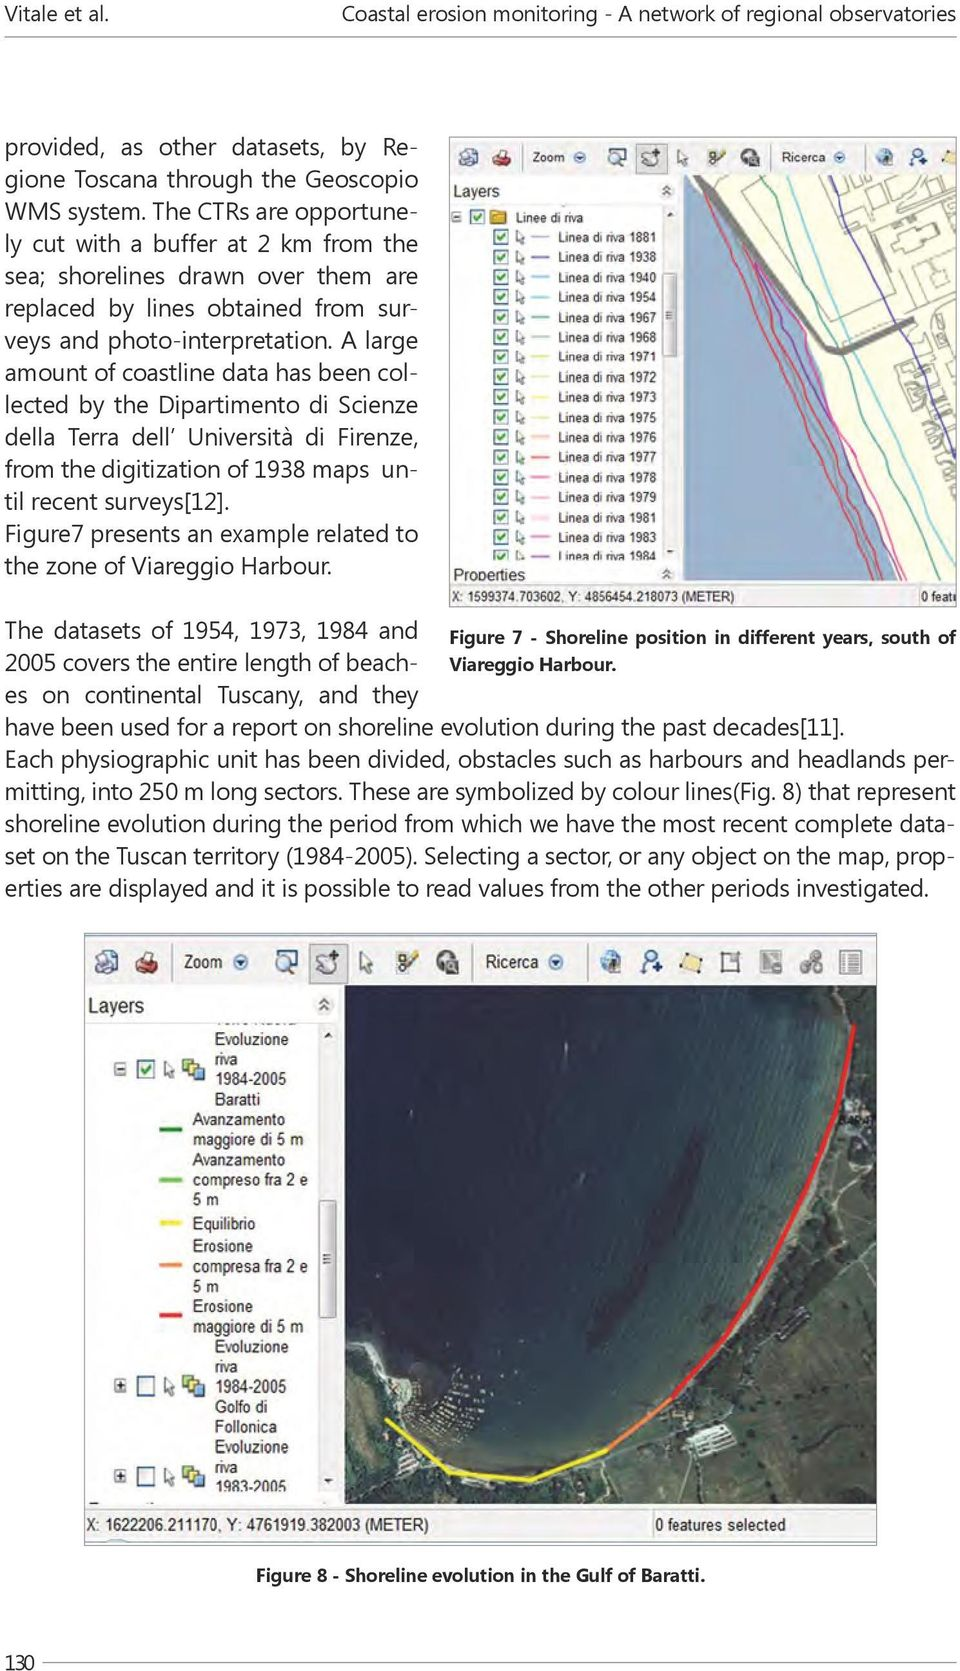 A large amount of coastline data has been collected by the Dipartimento di Scienze della Terra dell Università di Firenze, from the digitization of 1938 maps until recent surveys[12].